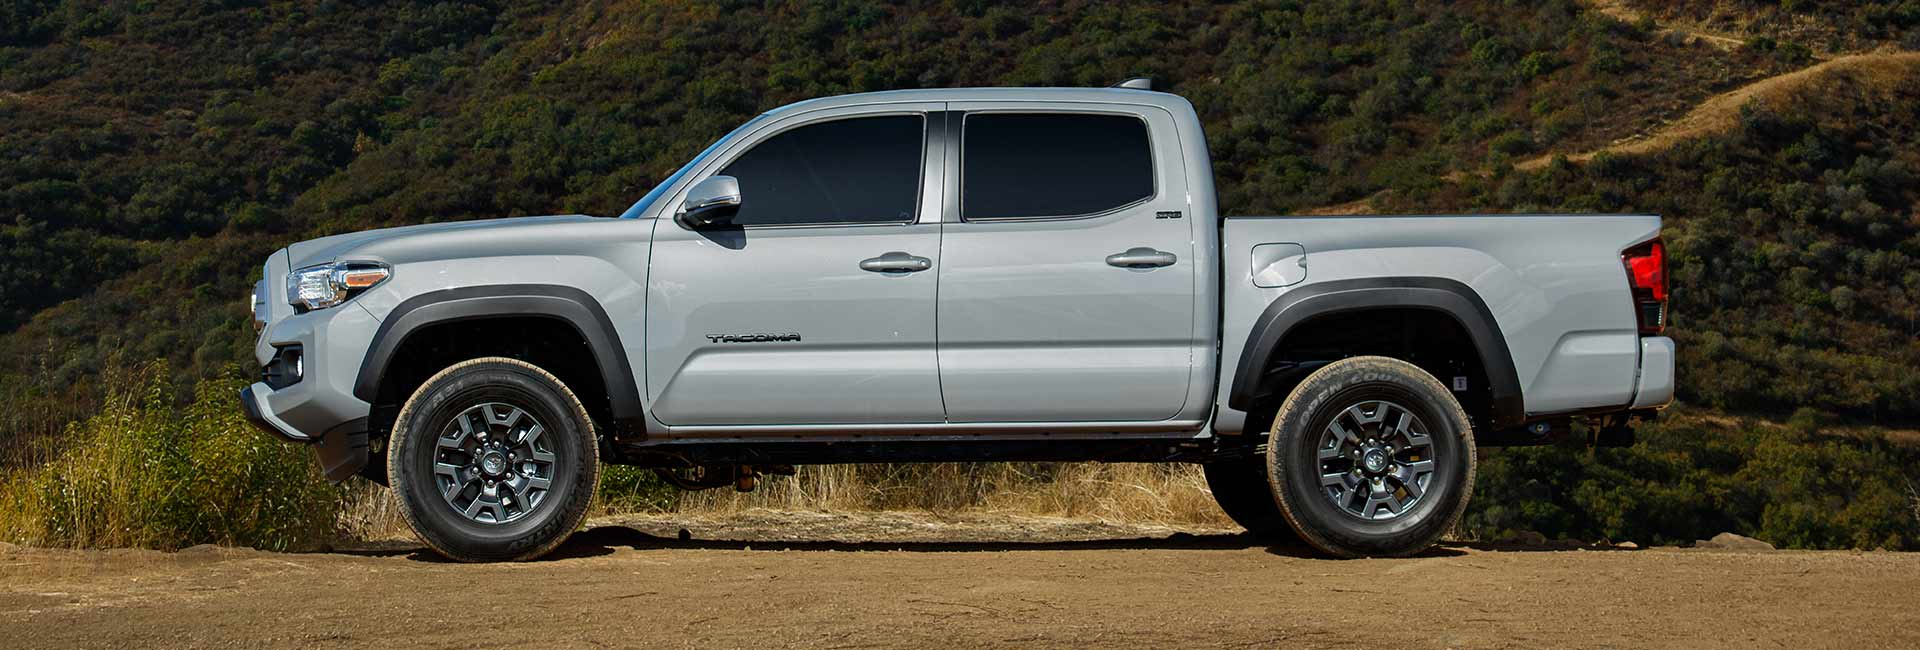 2021 silver Toyota Tacoma parked on a dirt road